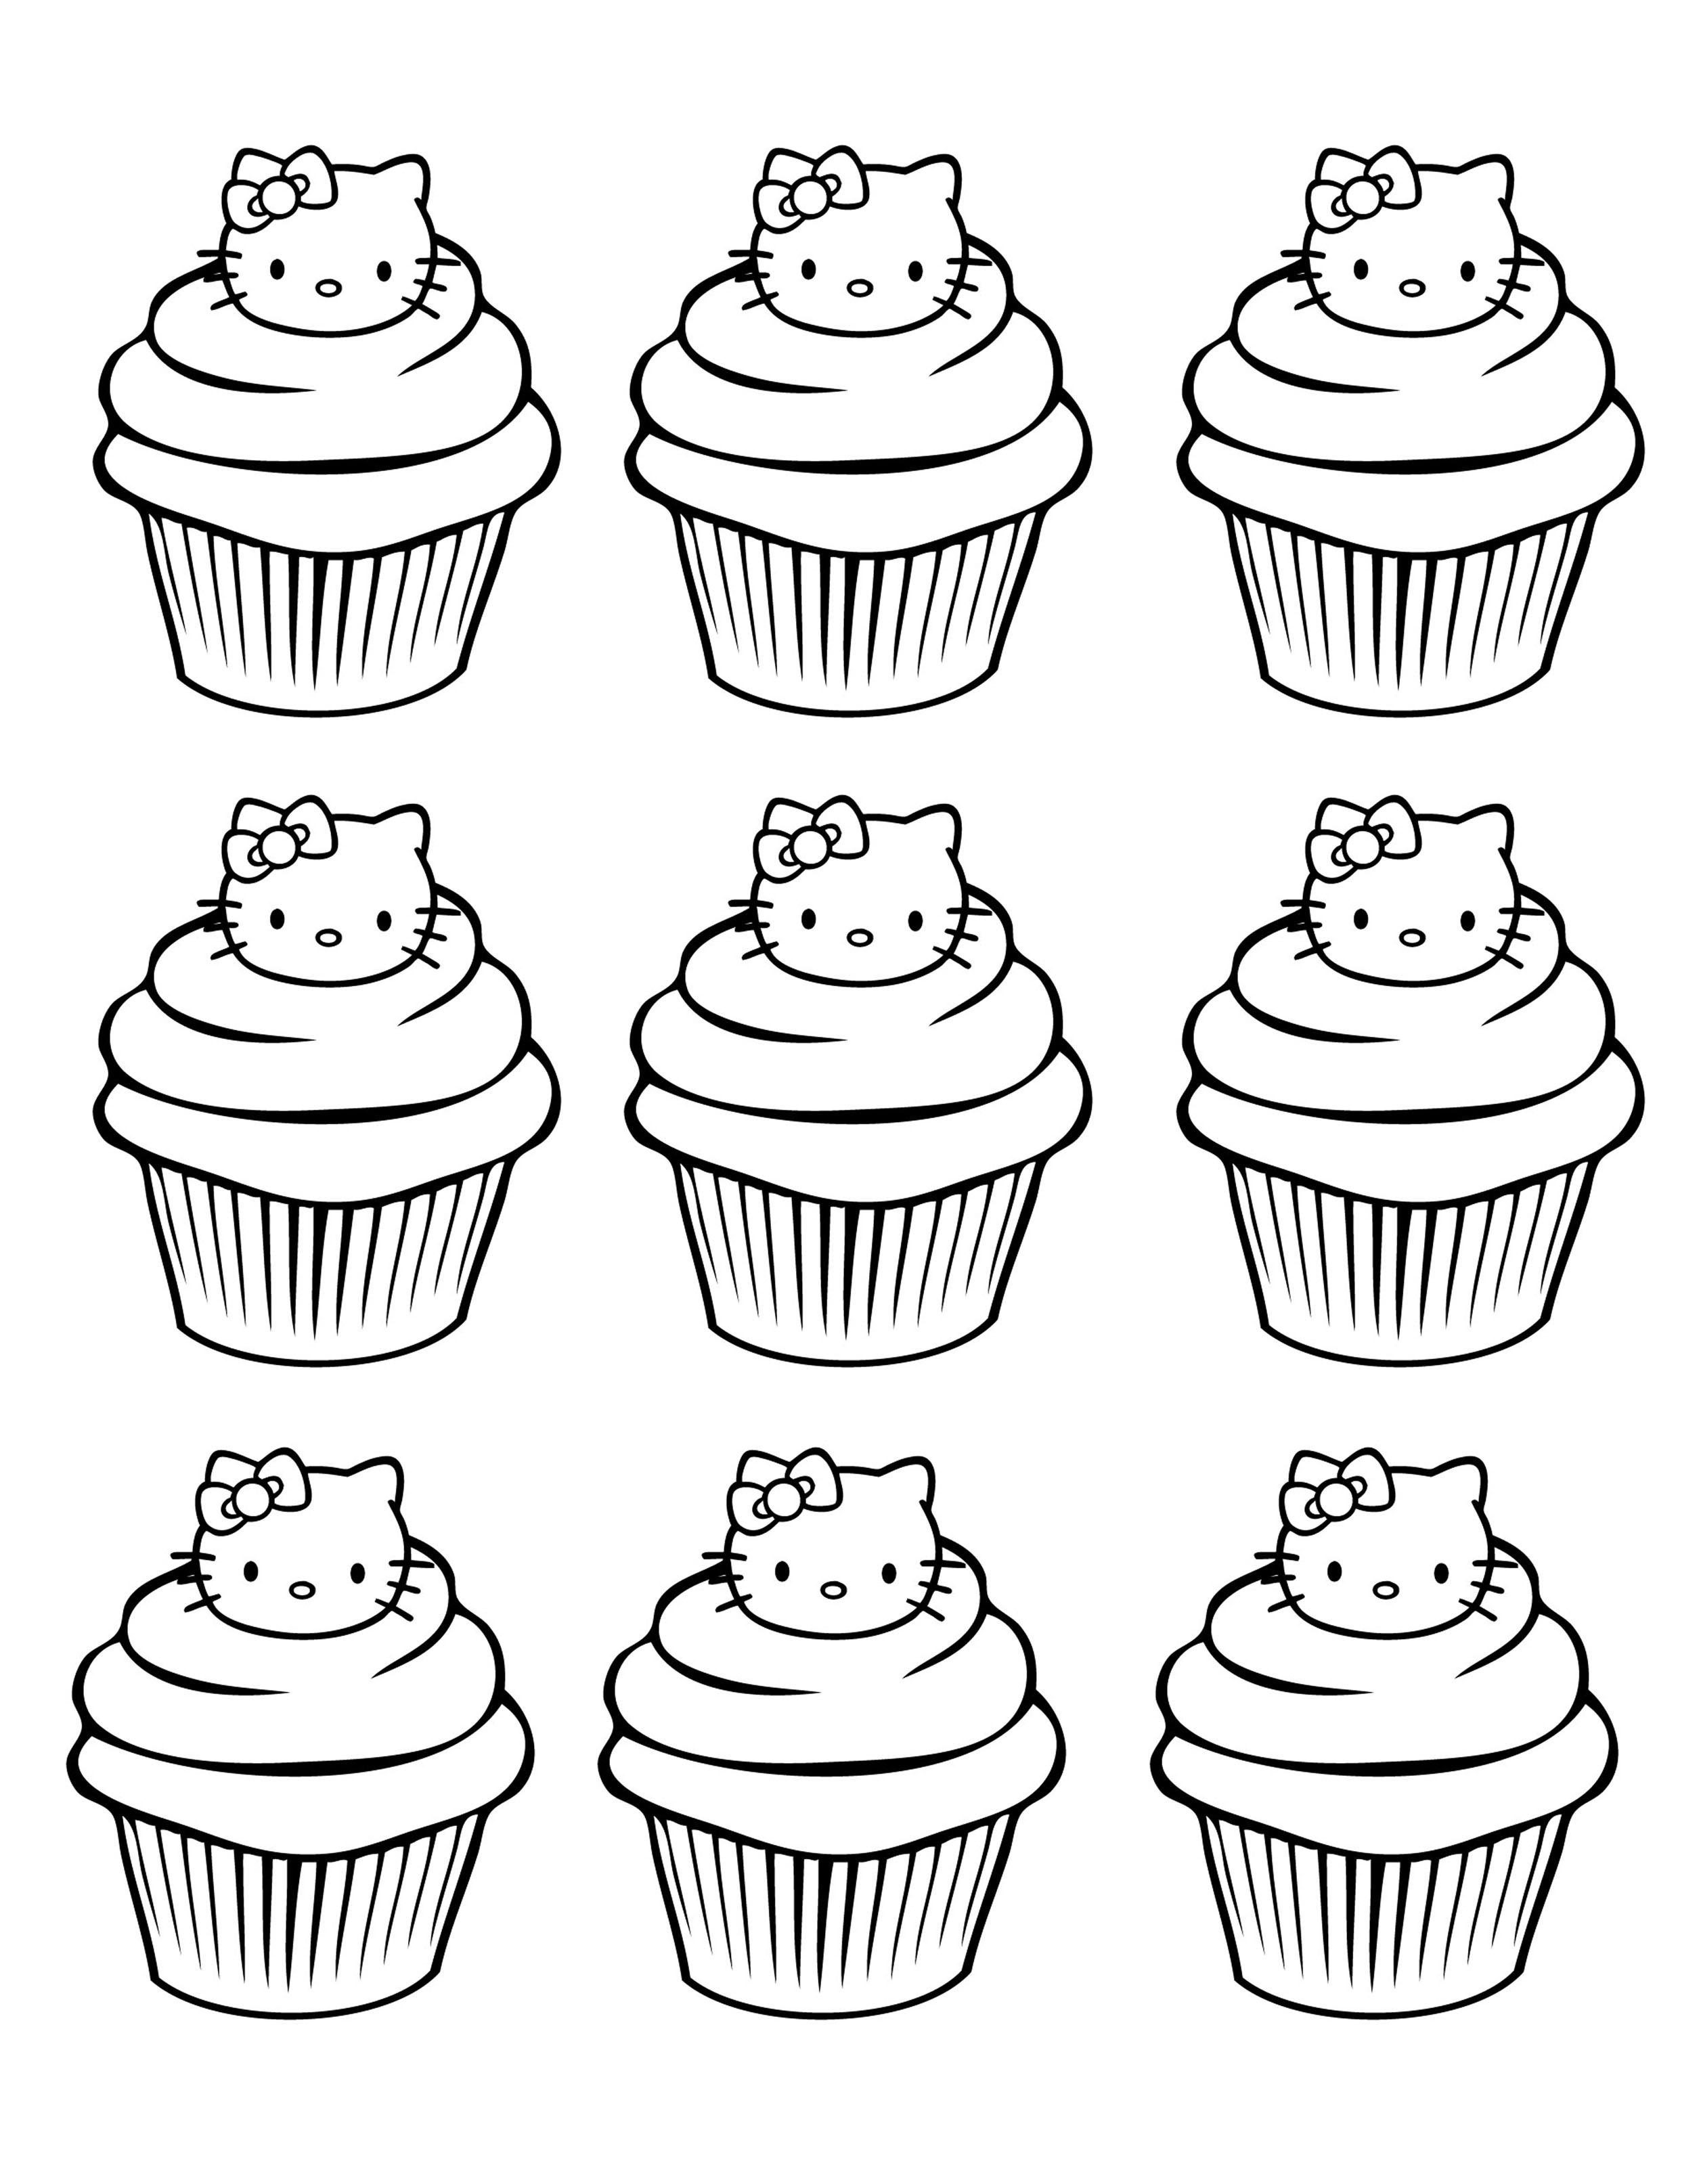 Cupcake Coloring Pages Simple : Cup Cakes - Coloring pages for adults : coloring-cupcakes ...